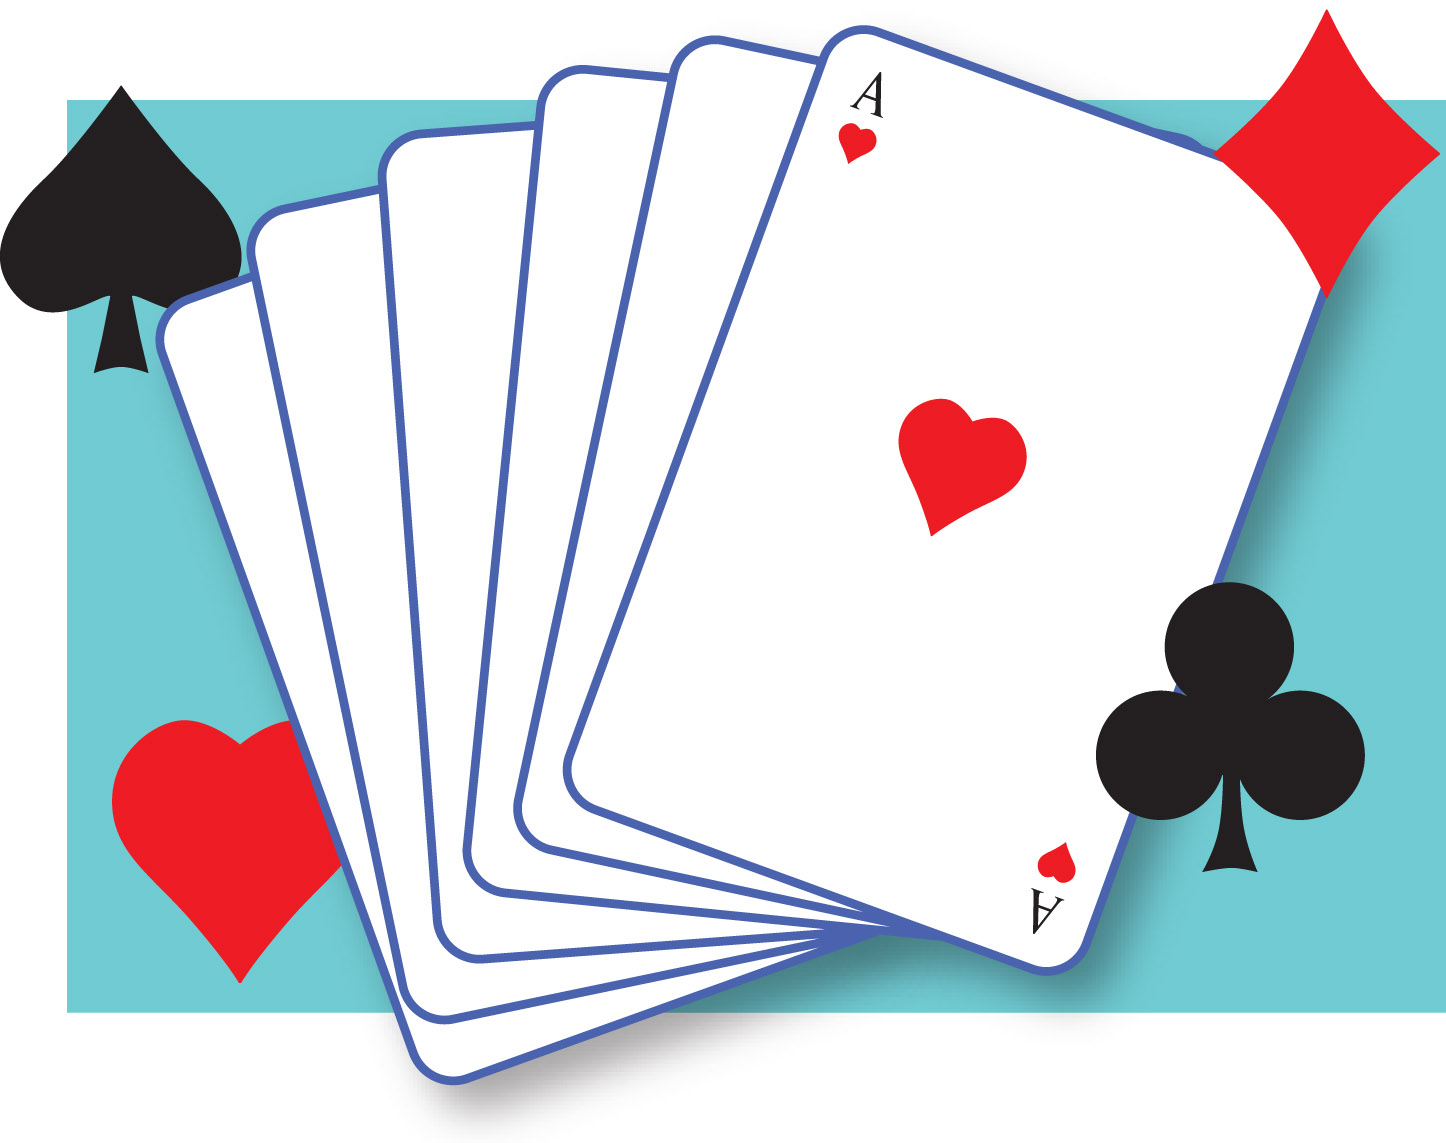 Card games clipart png freeuse download Free Bridge Game Cliparts, Download Free Clip Art, Free Clip Art on ... png freeuse download